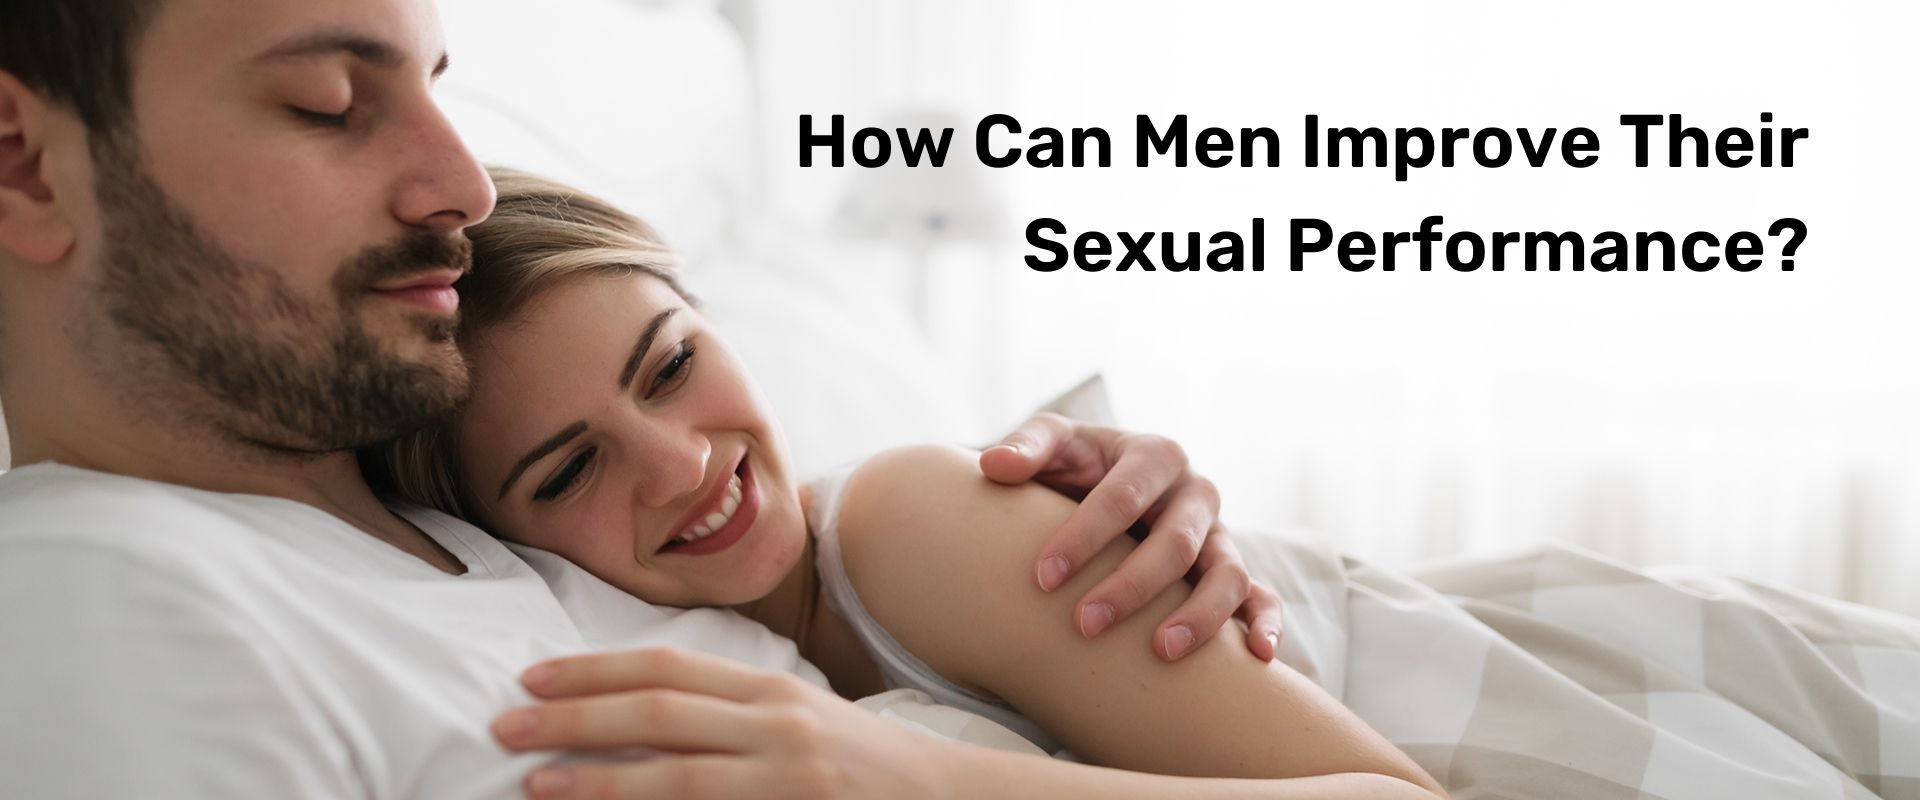 How Can Men Improve Their Sexual Performance